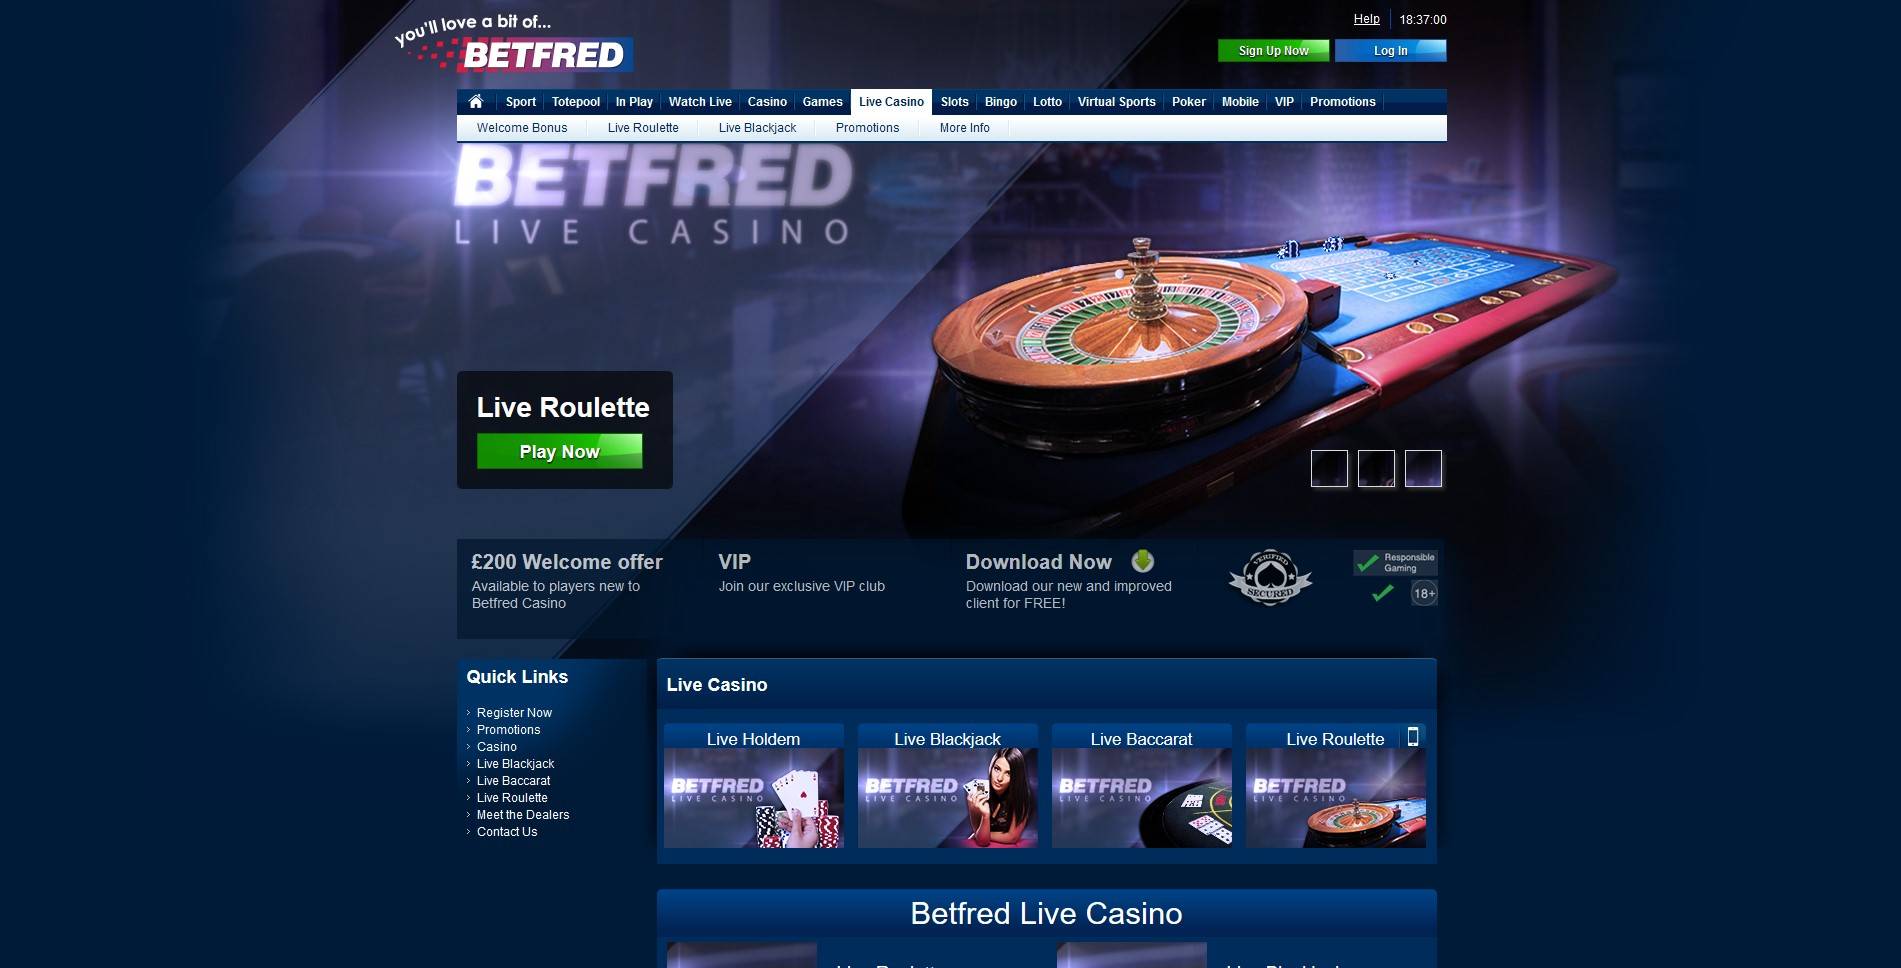 Fabulous Casino Review – The Expert Ratings and User Reviews